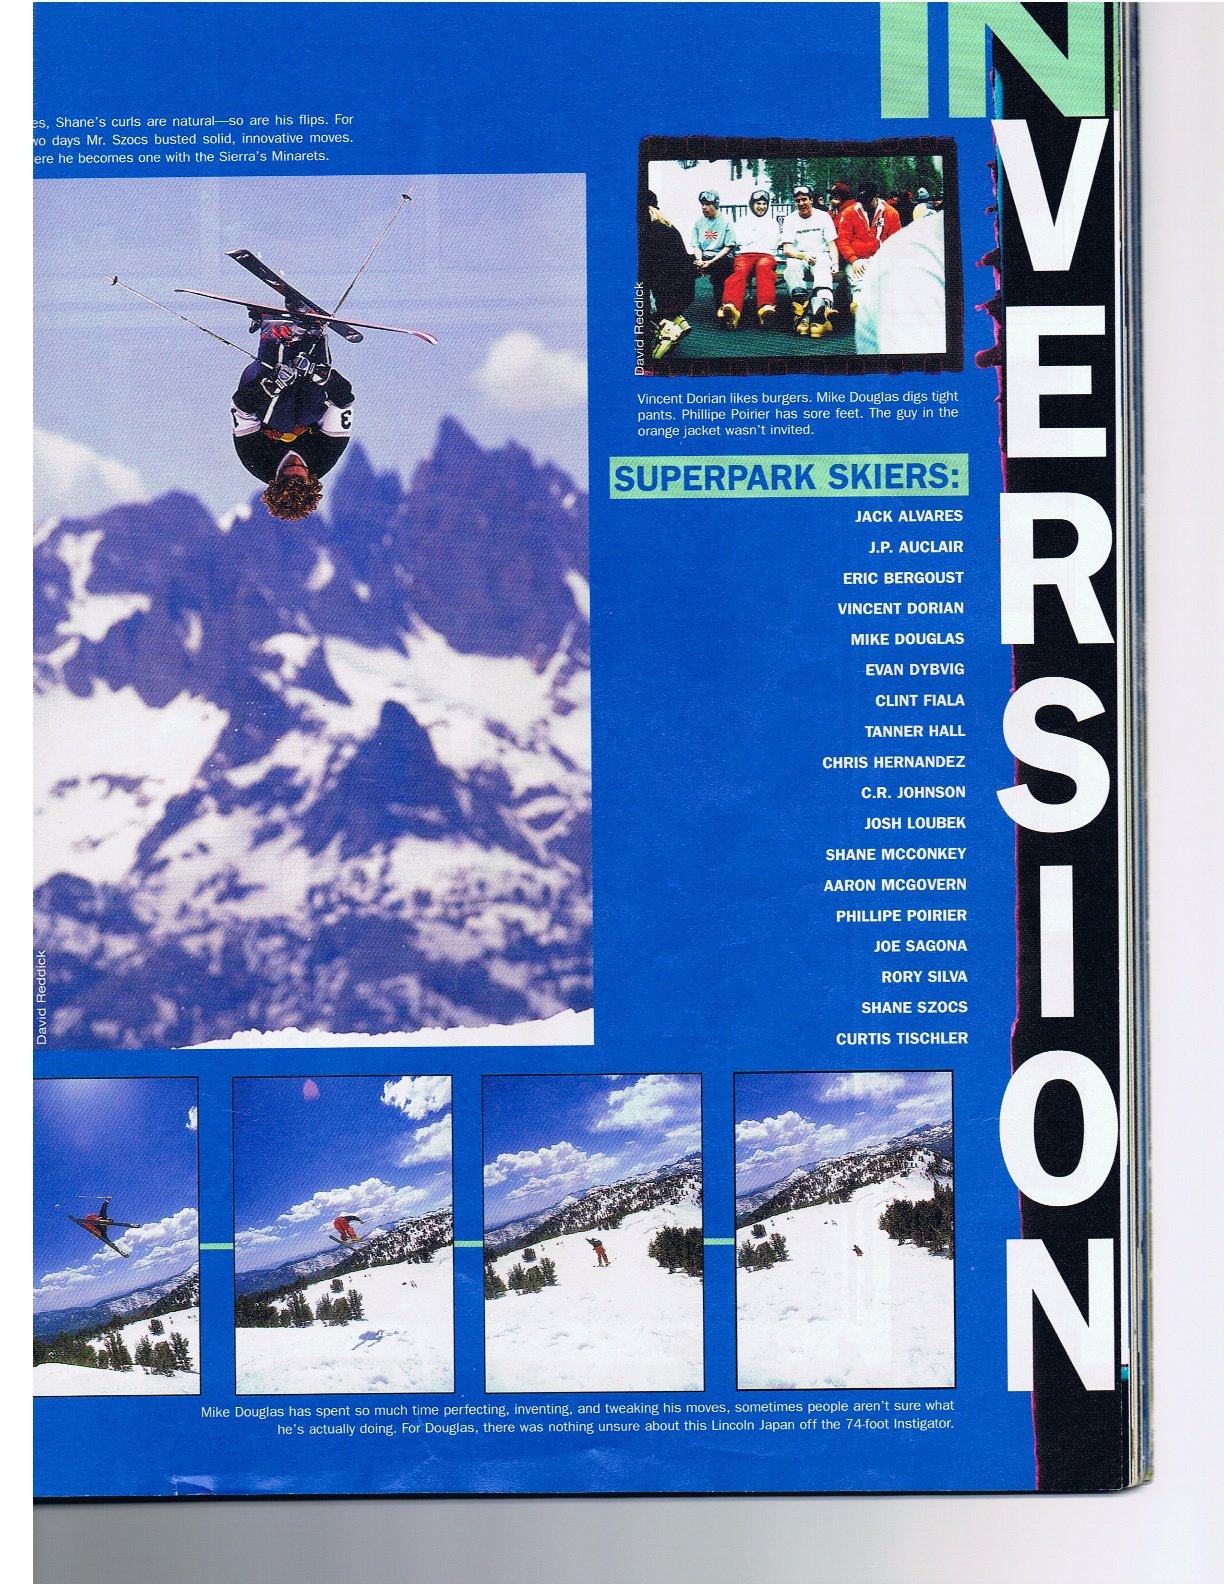 Superpark 1 article - page 4